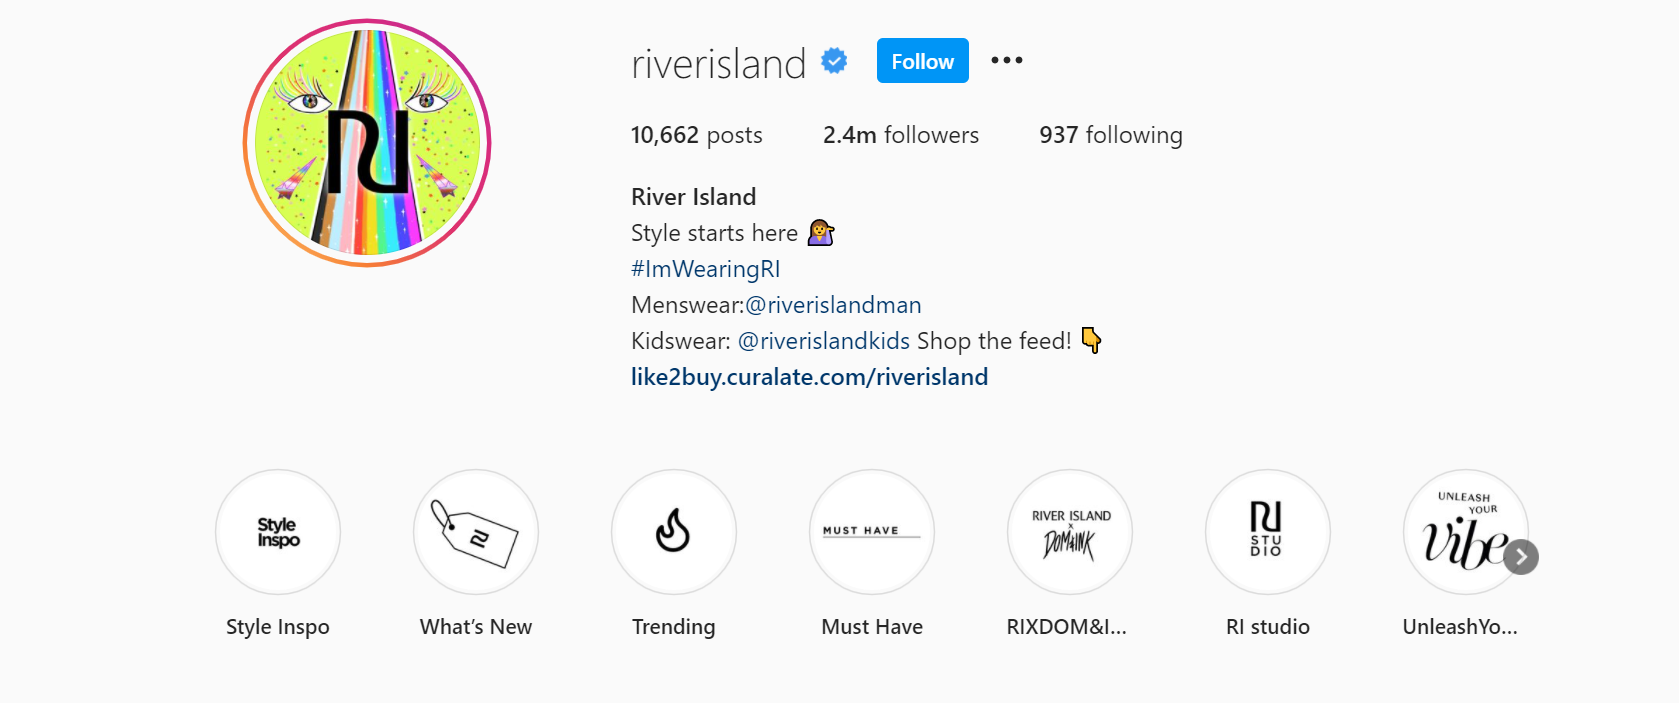 River Island's branded hashtag anduser generated content